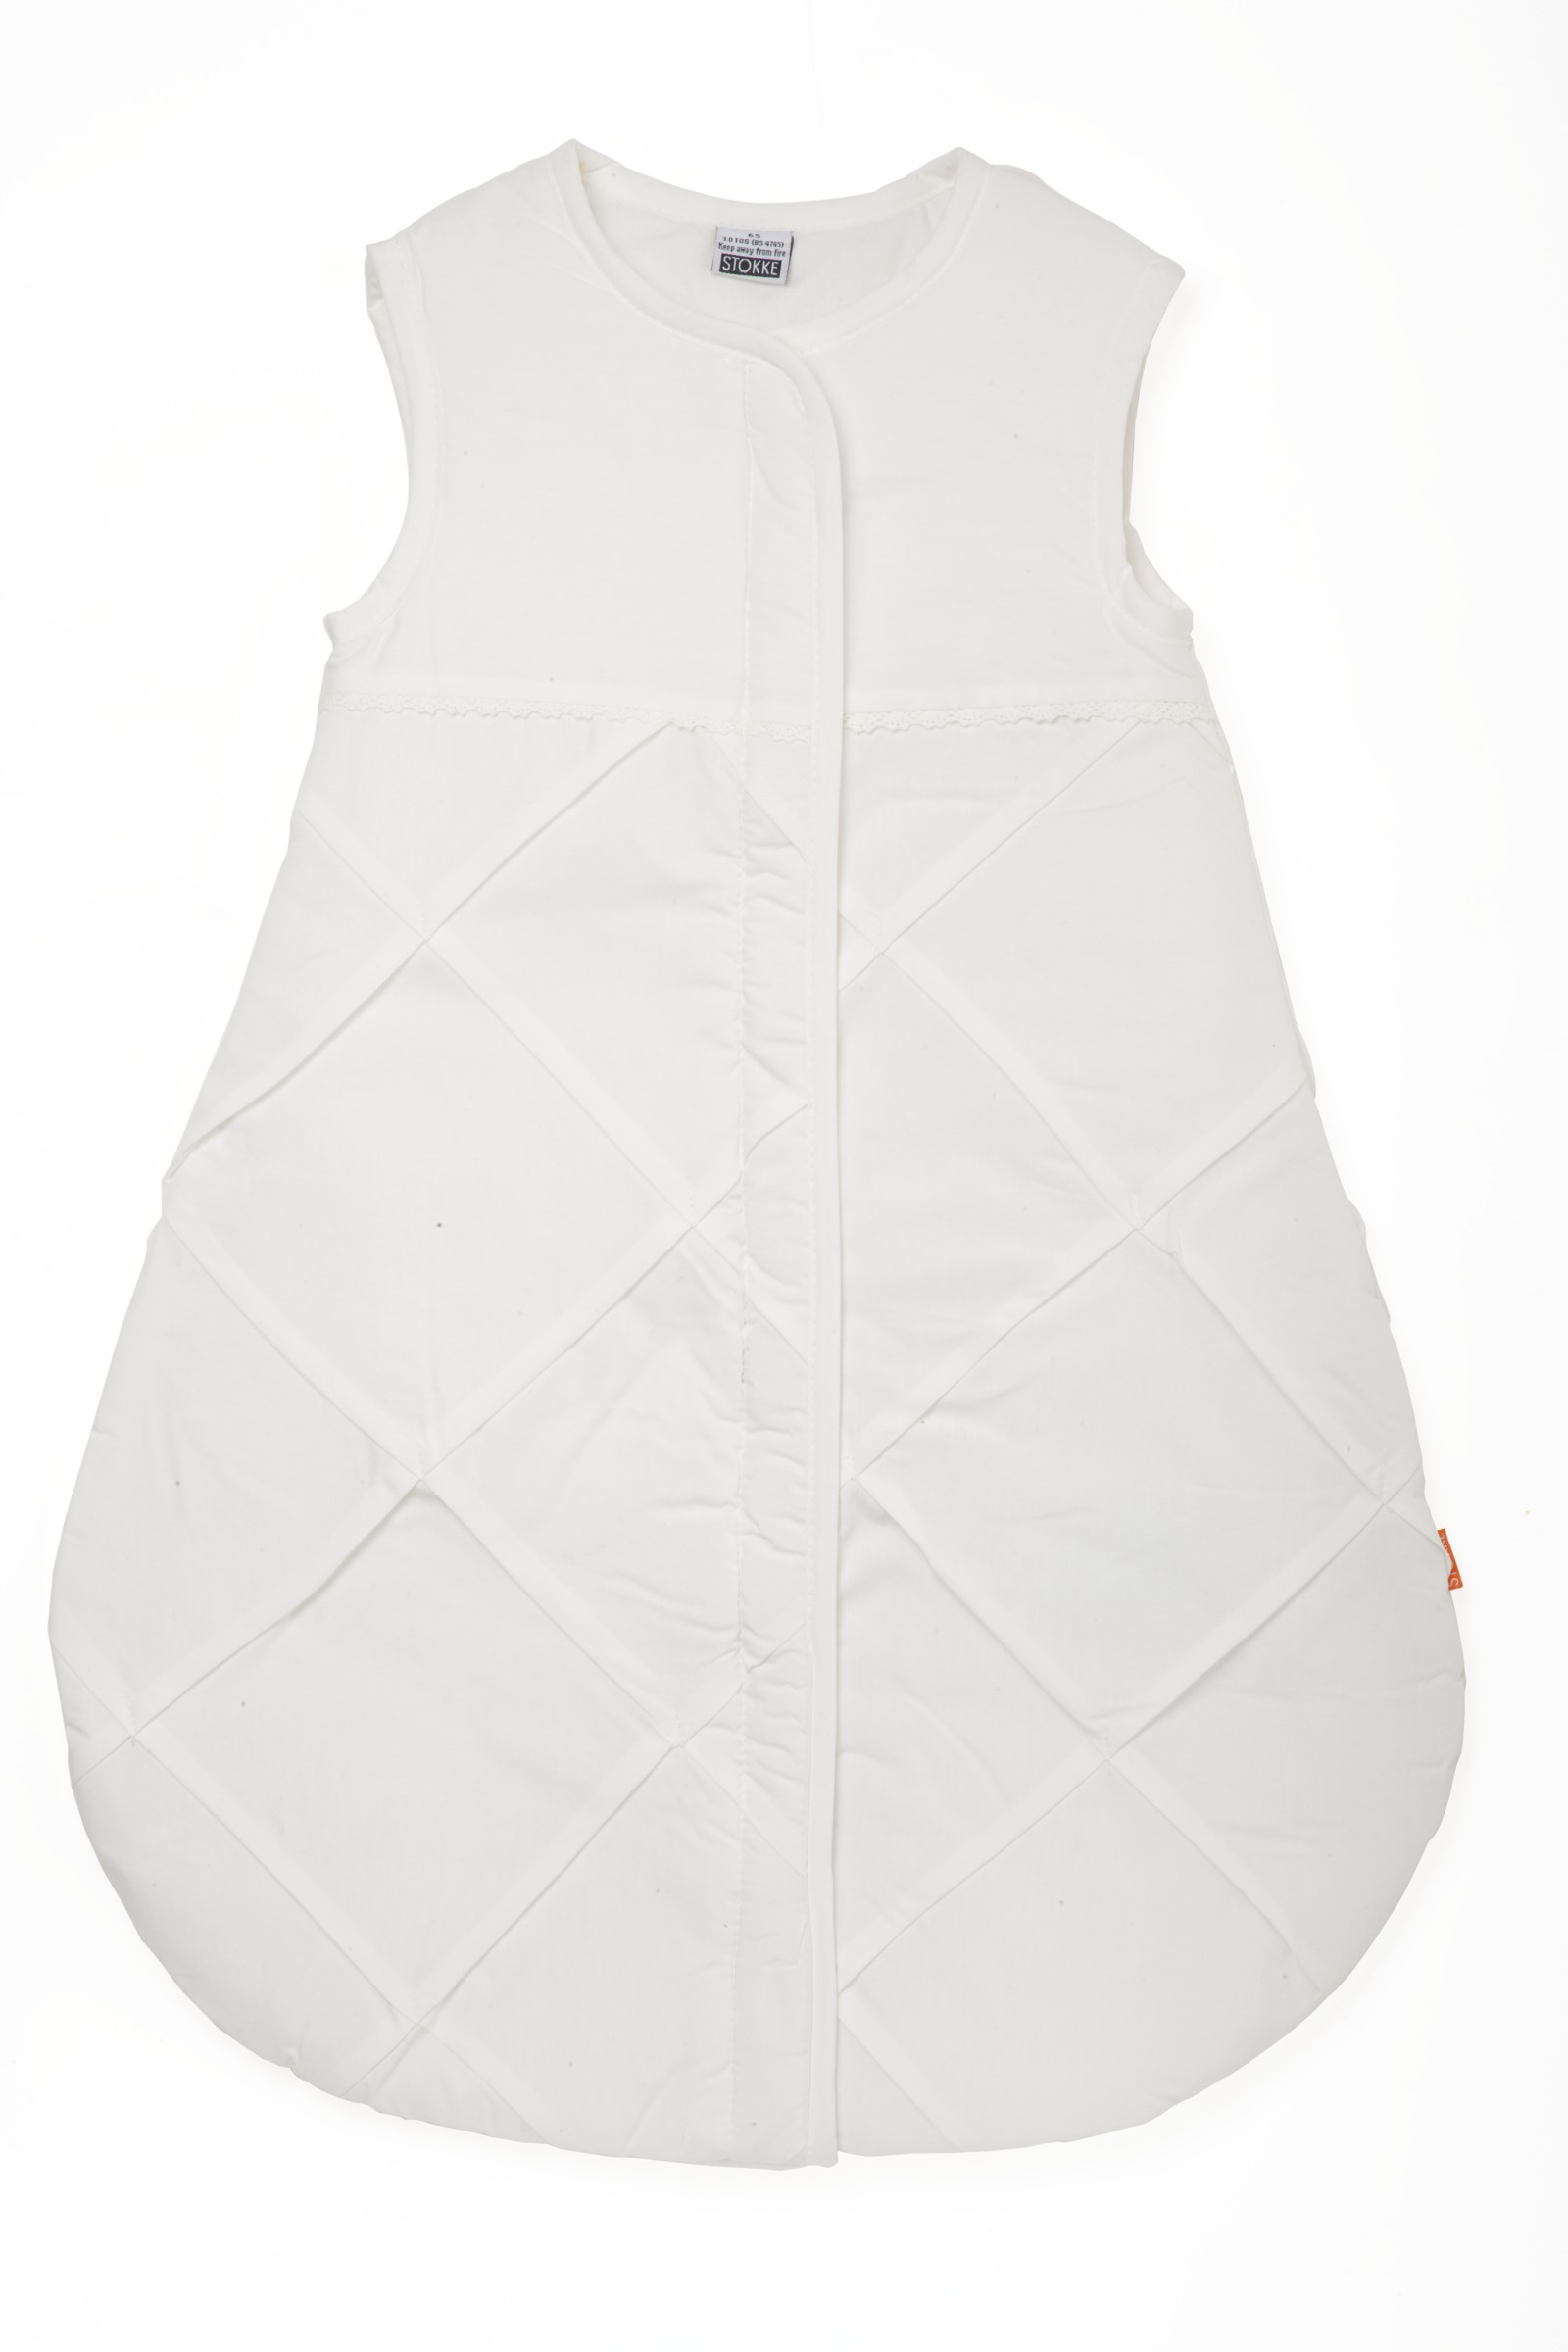 Sleeping Bag 65cm, Classic White